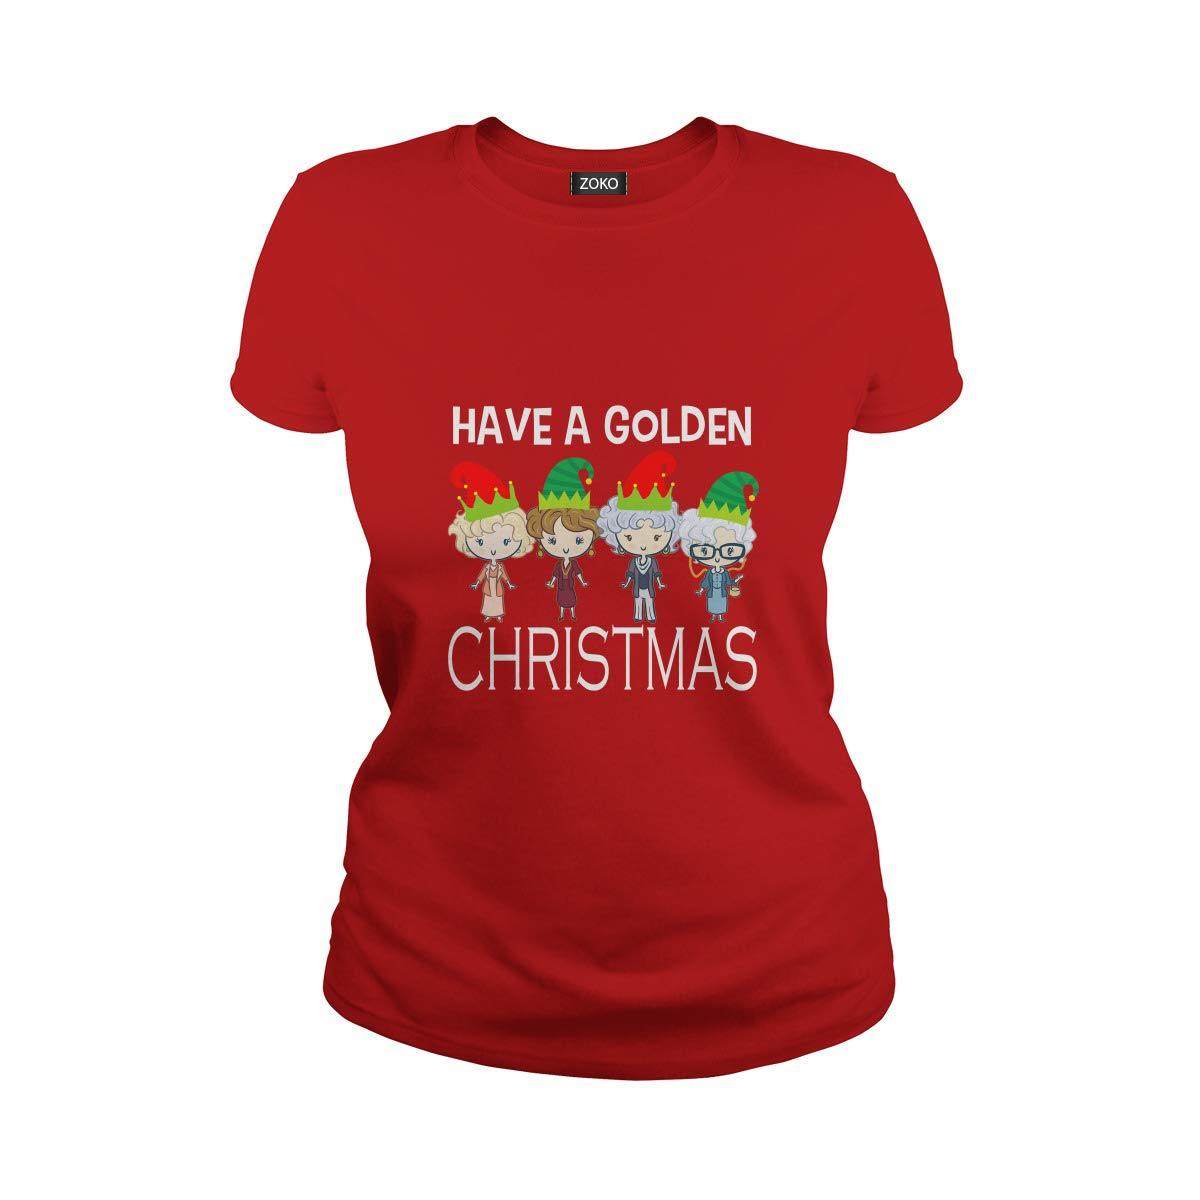 Ladies Tee Red XXLarge Zoko Apparel Have A golden Christmas TShirt